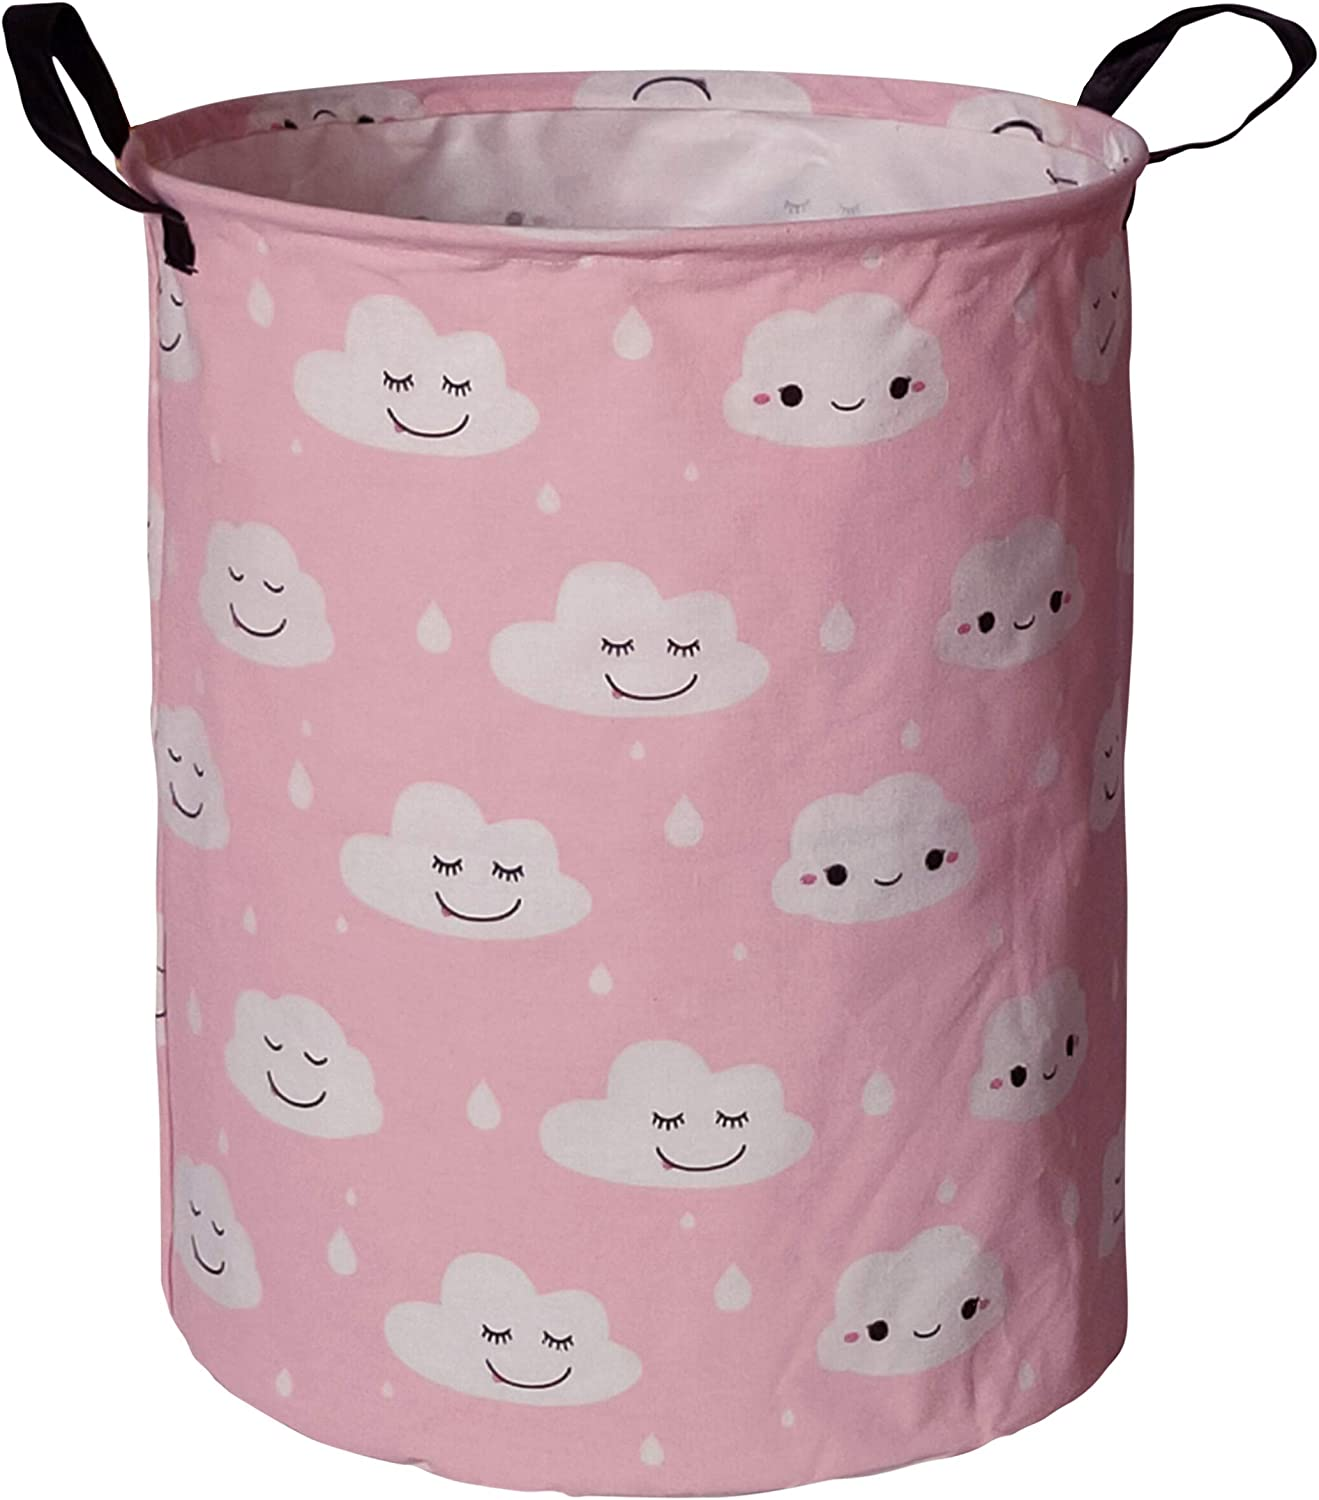 HUAYEE 19.6 Inches Large Laundry Basket Waterproof Round Cotton Linen Collapsible Storage bin with Handles for Hamper Kids Room,Toy Storage(Pink Clouds)